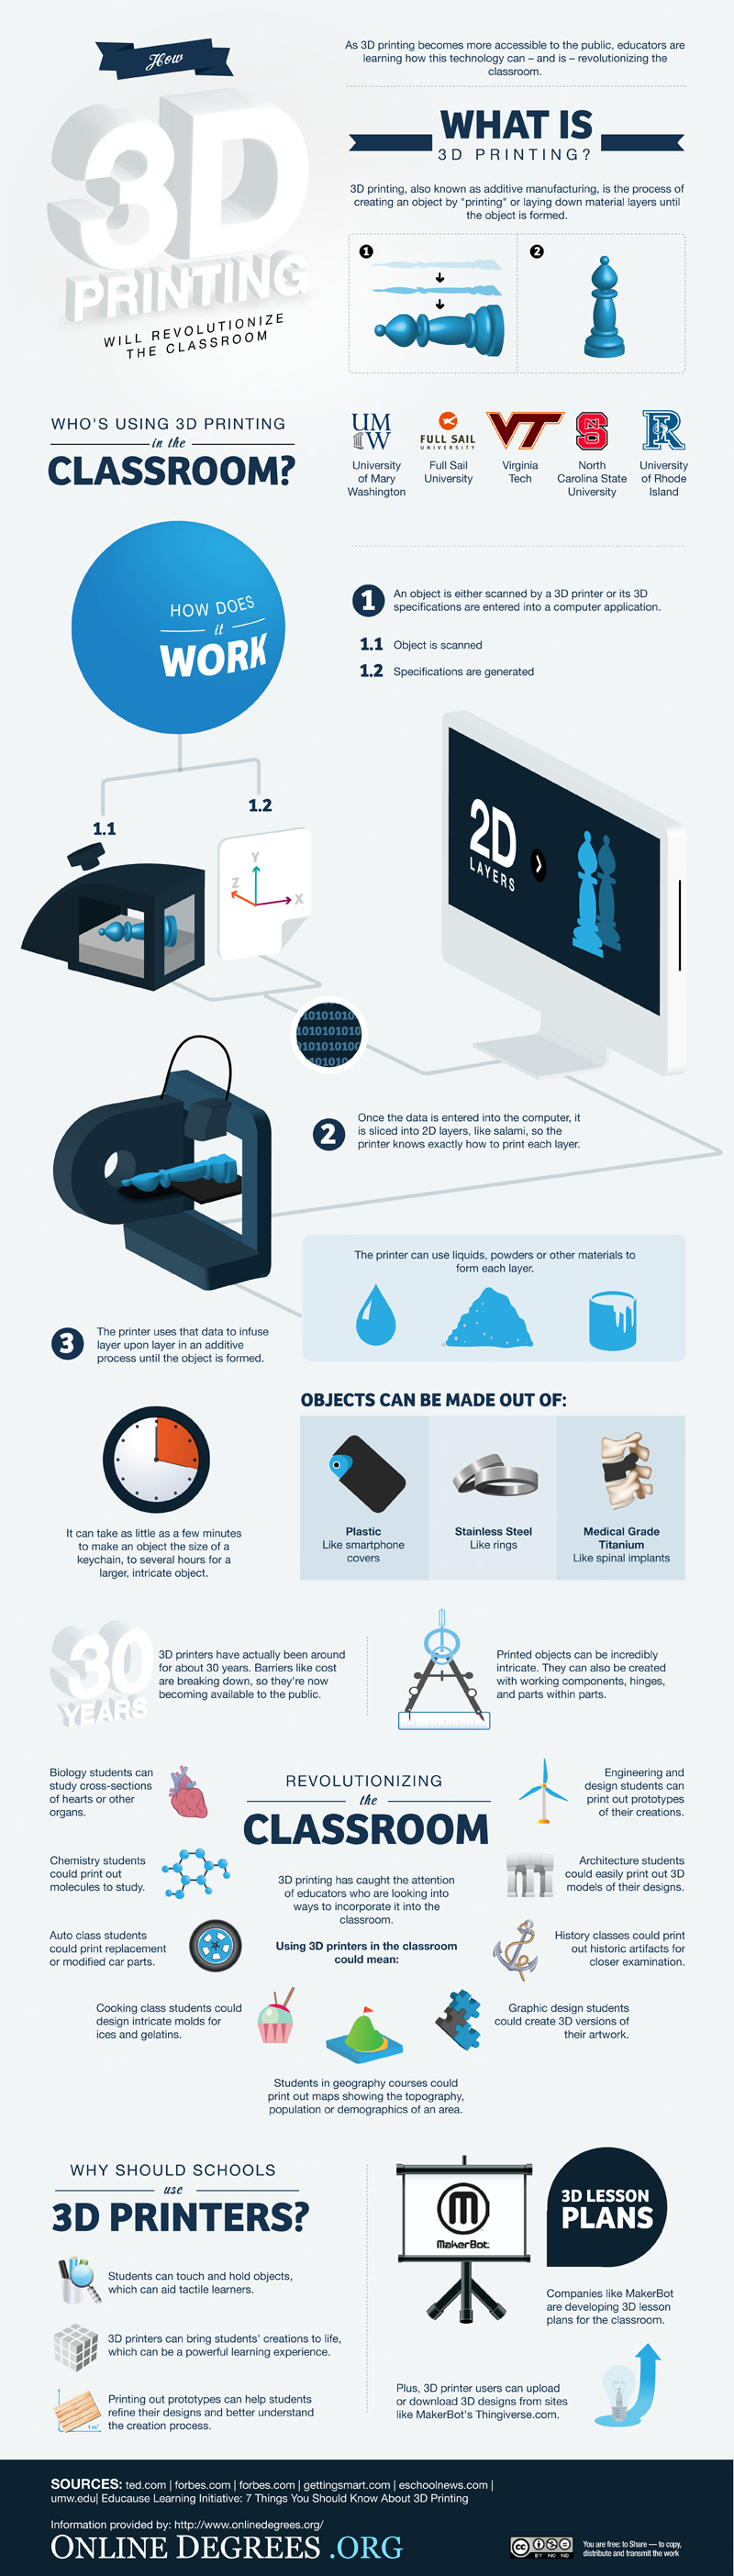 3D Printing Classroom Infographic